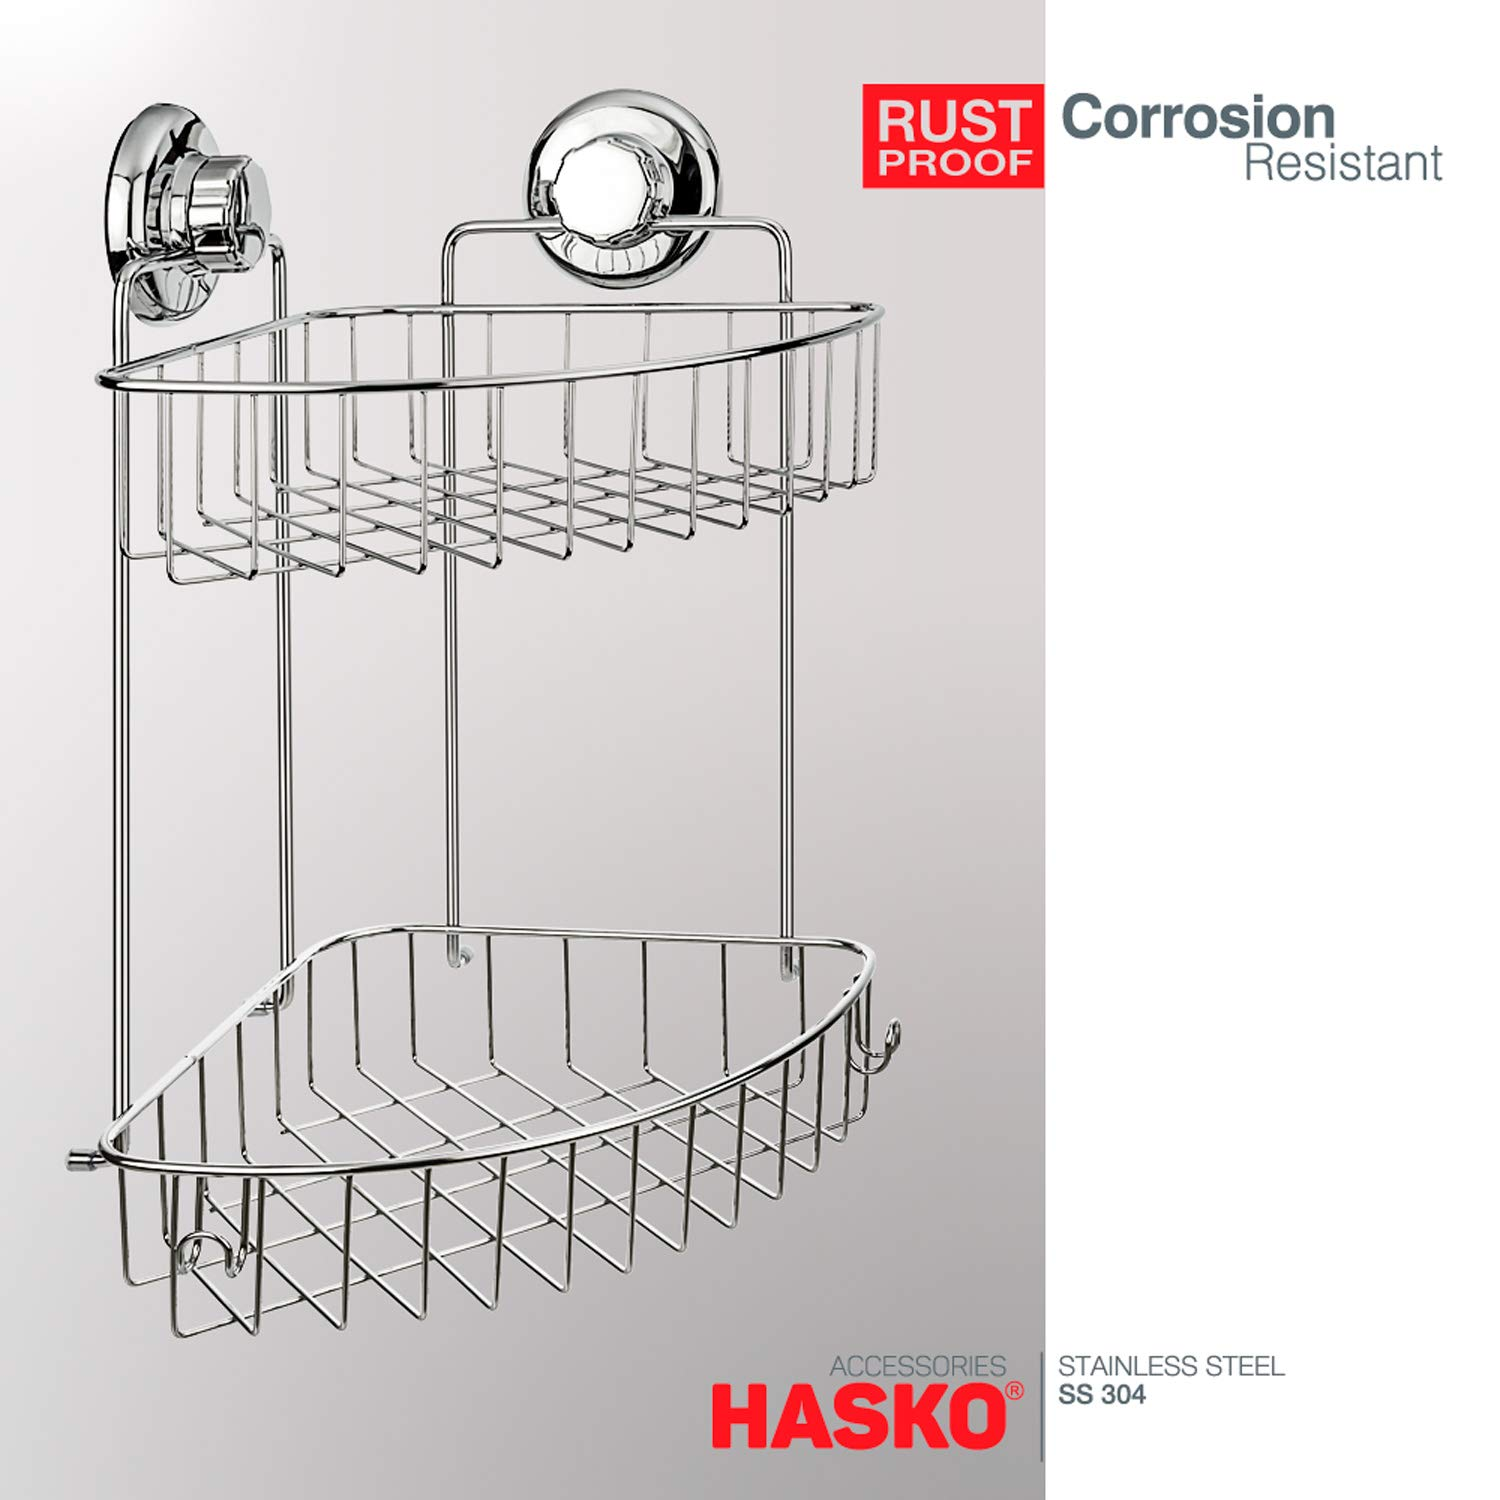 304 Stainless Steel Polished Chrome Shelf 2 Tier Basket Holder for Bathroom and Kitchen HASKO accessories Suction Cup Corner Shower Caddy